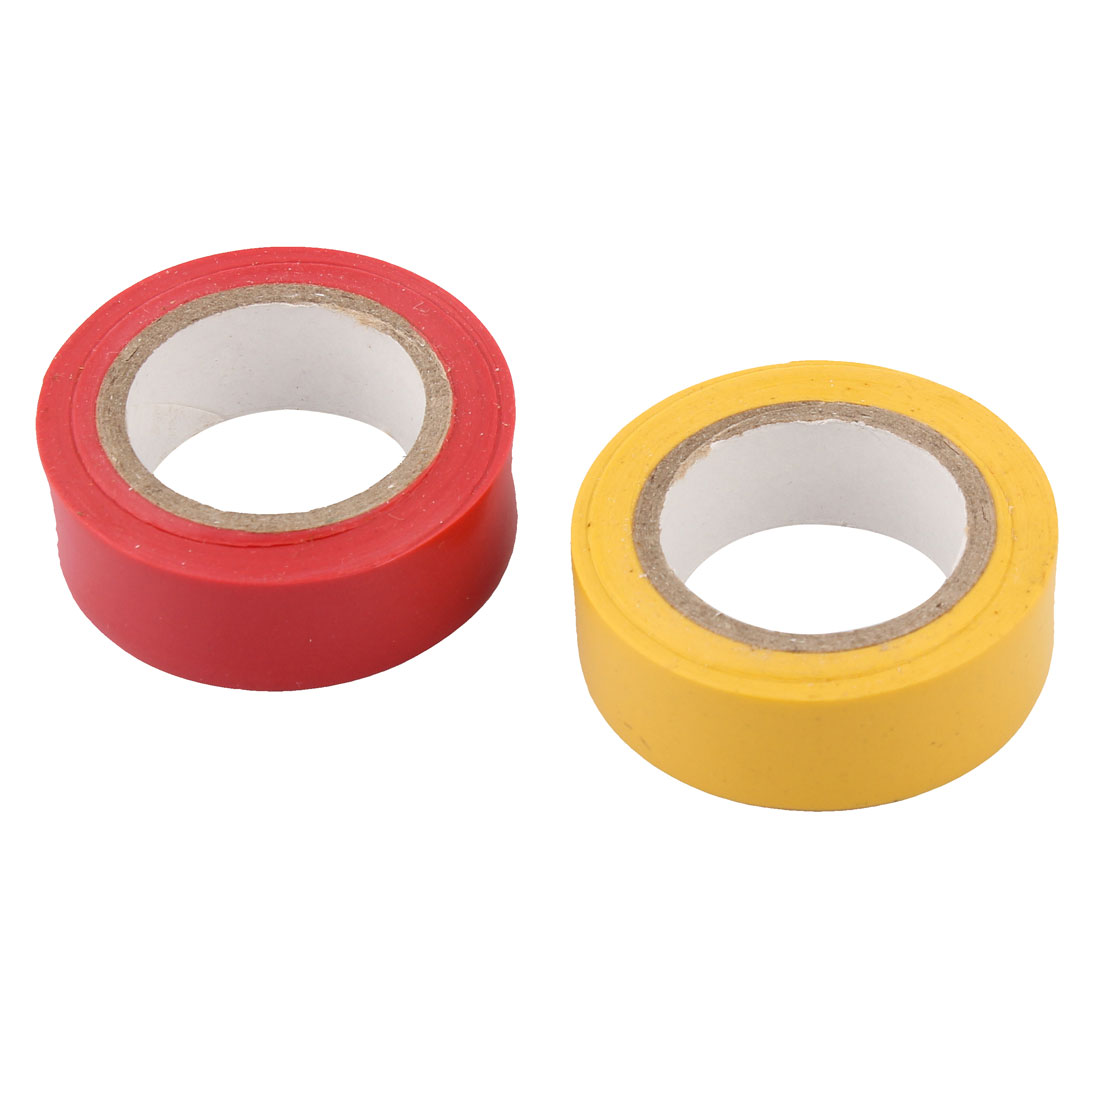 17mm Width Self Adhesive Electrical Wire Insulation Tape Roll Red Yellow 2pcs